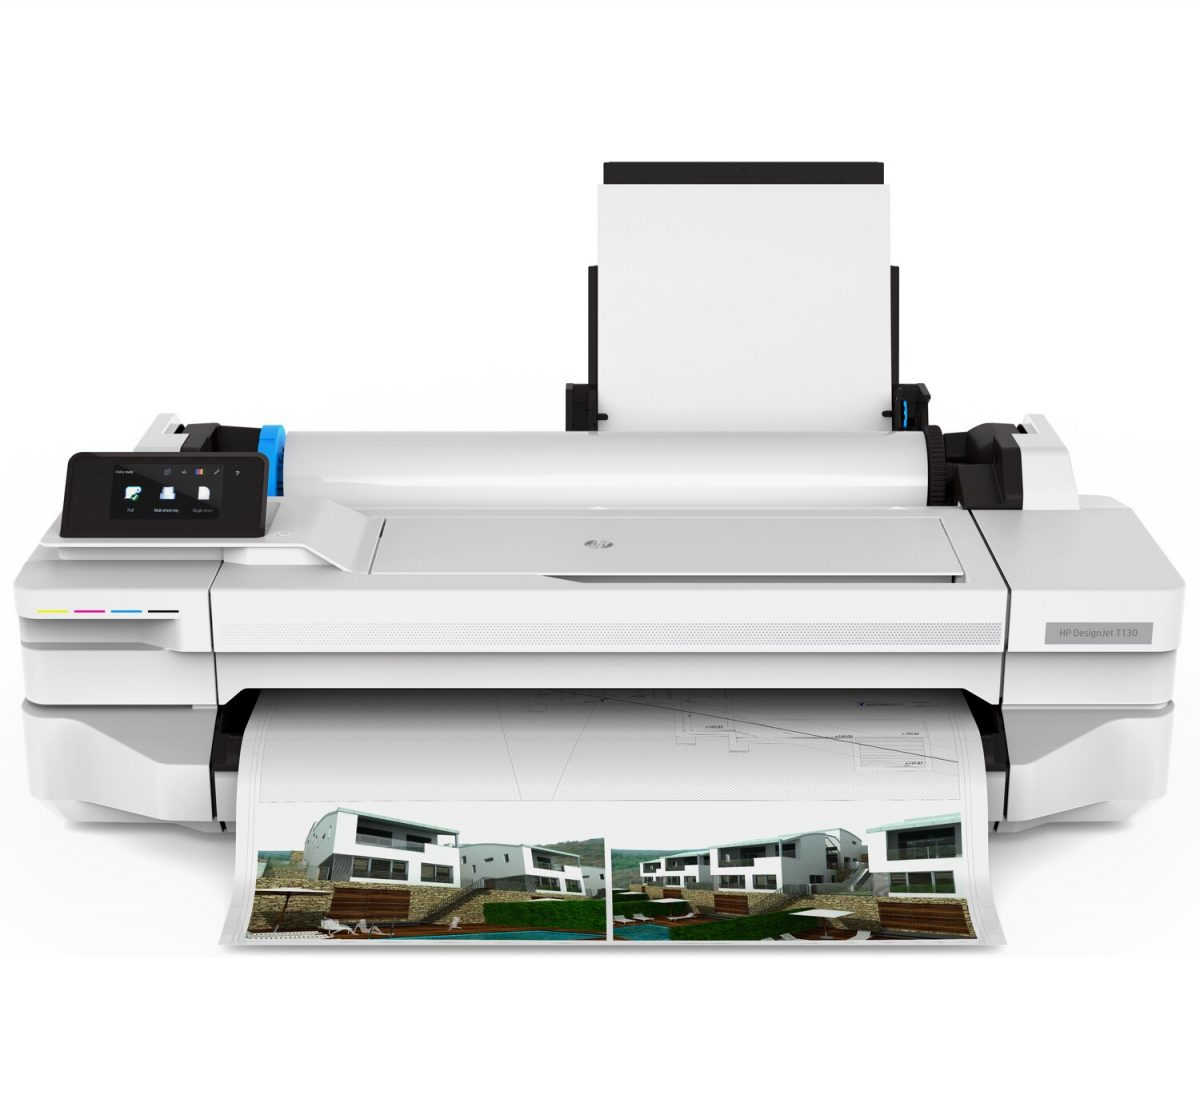 HP DesignJet T130 A1 Large Format Printer – with four rolls of paper 610mm x 50m included